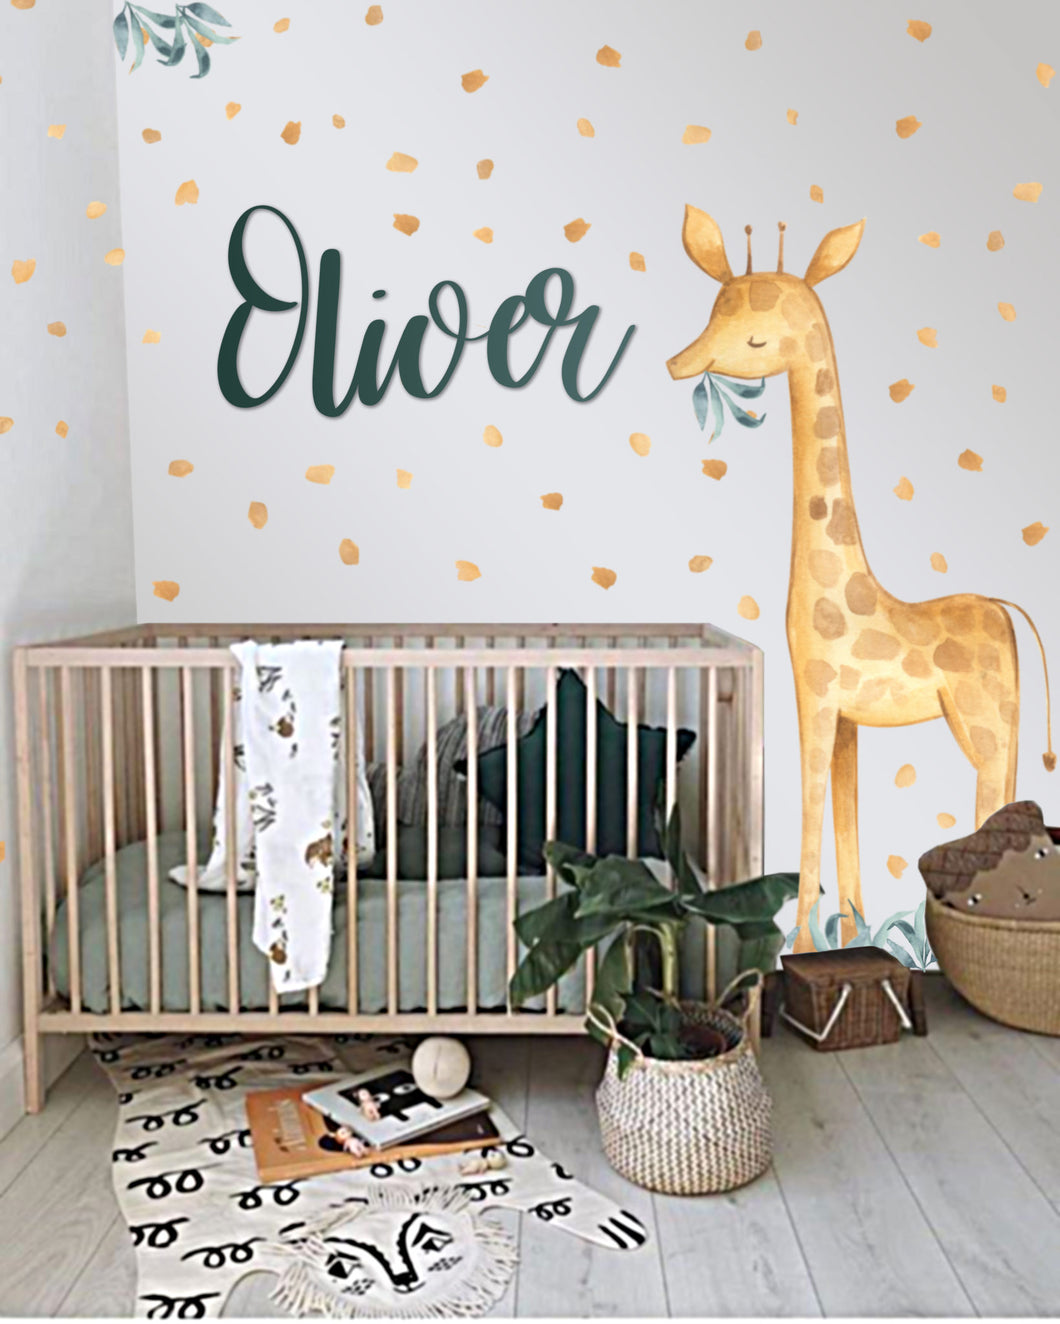 Ginger the Giant Giraffe Wall Art